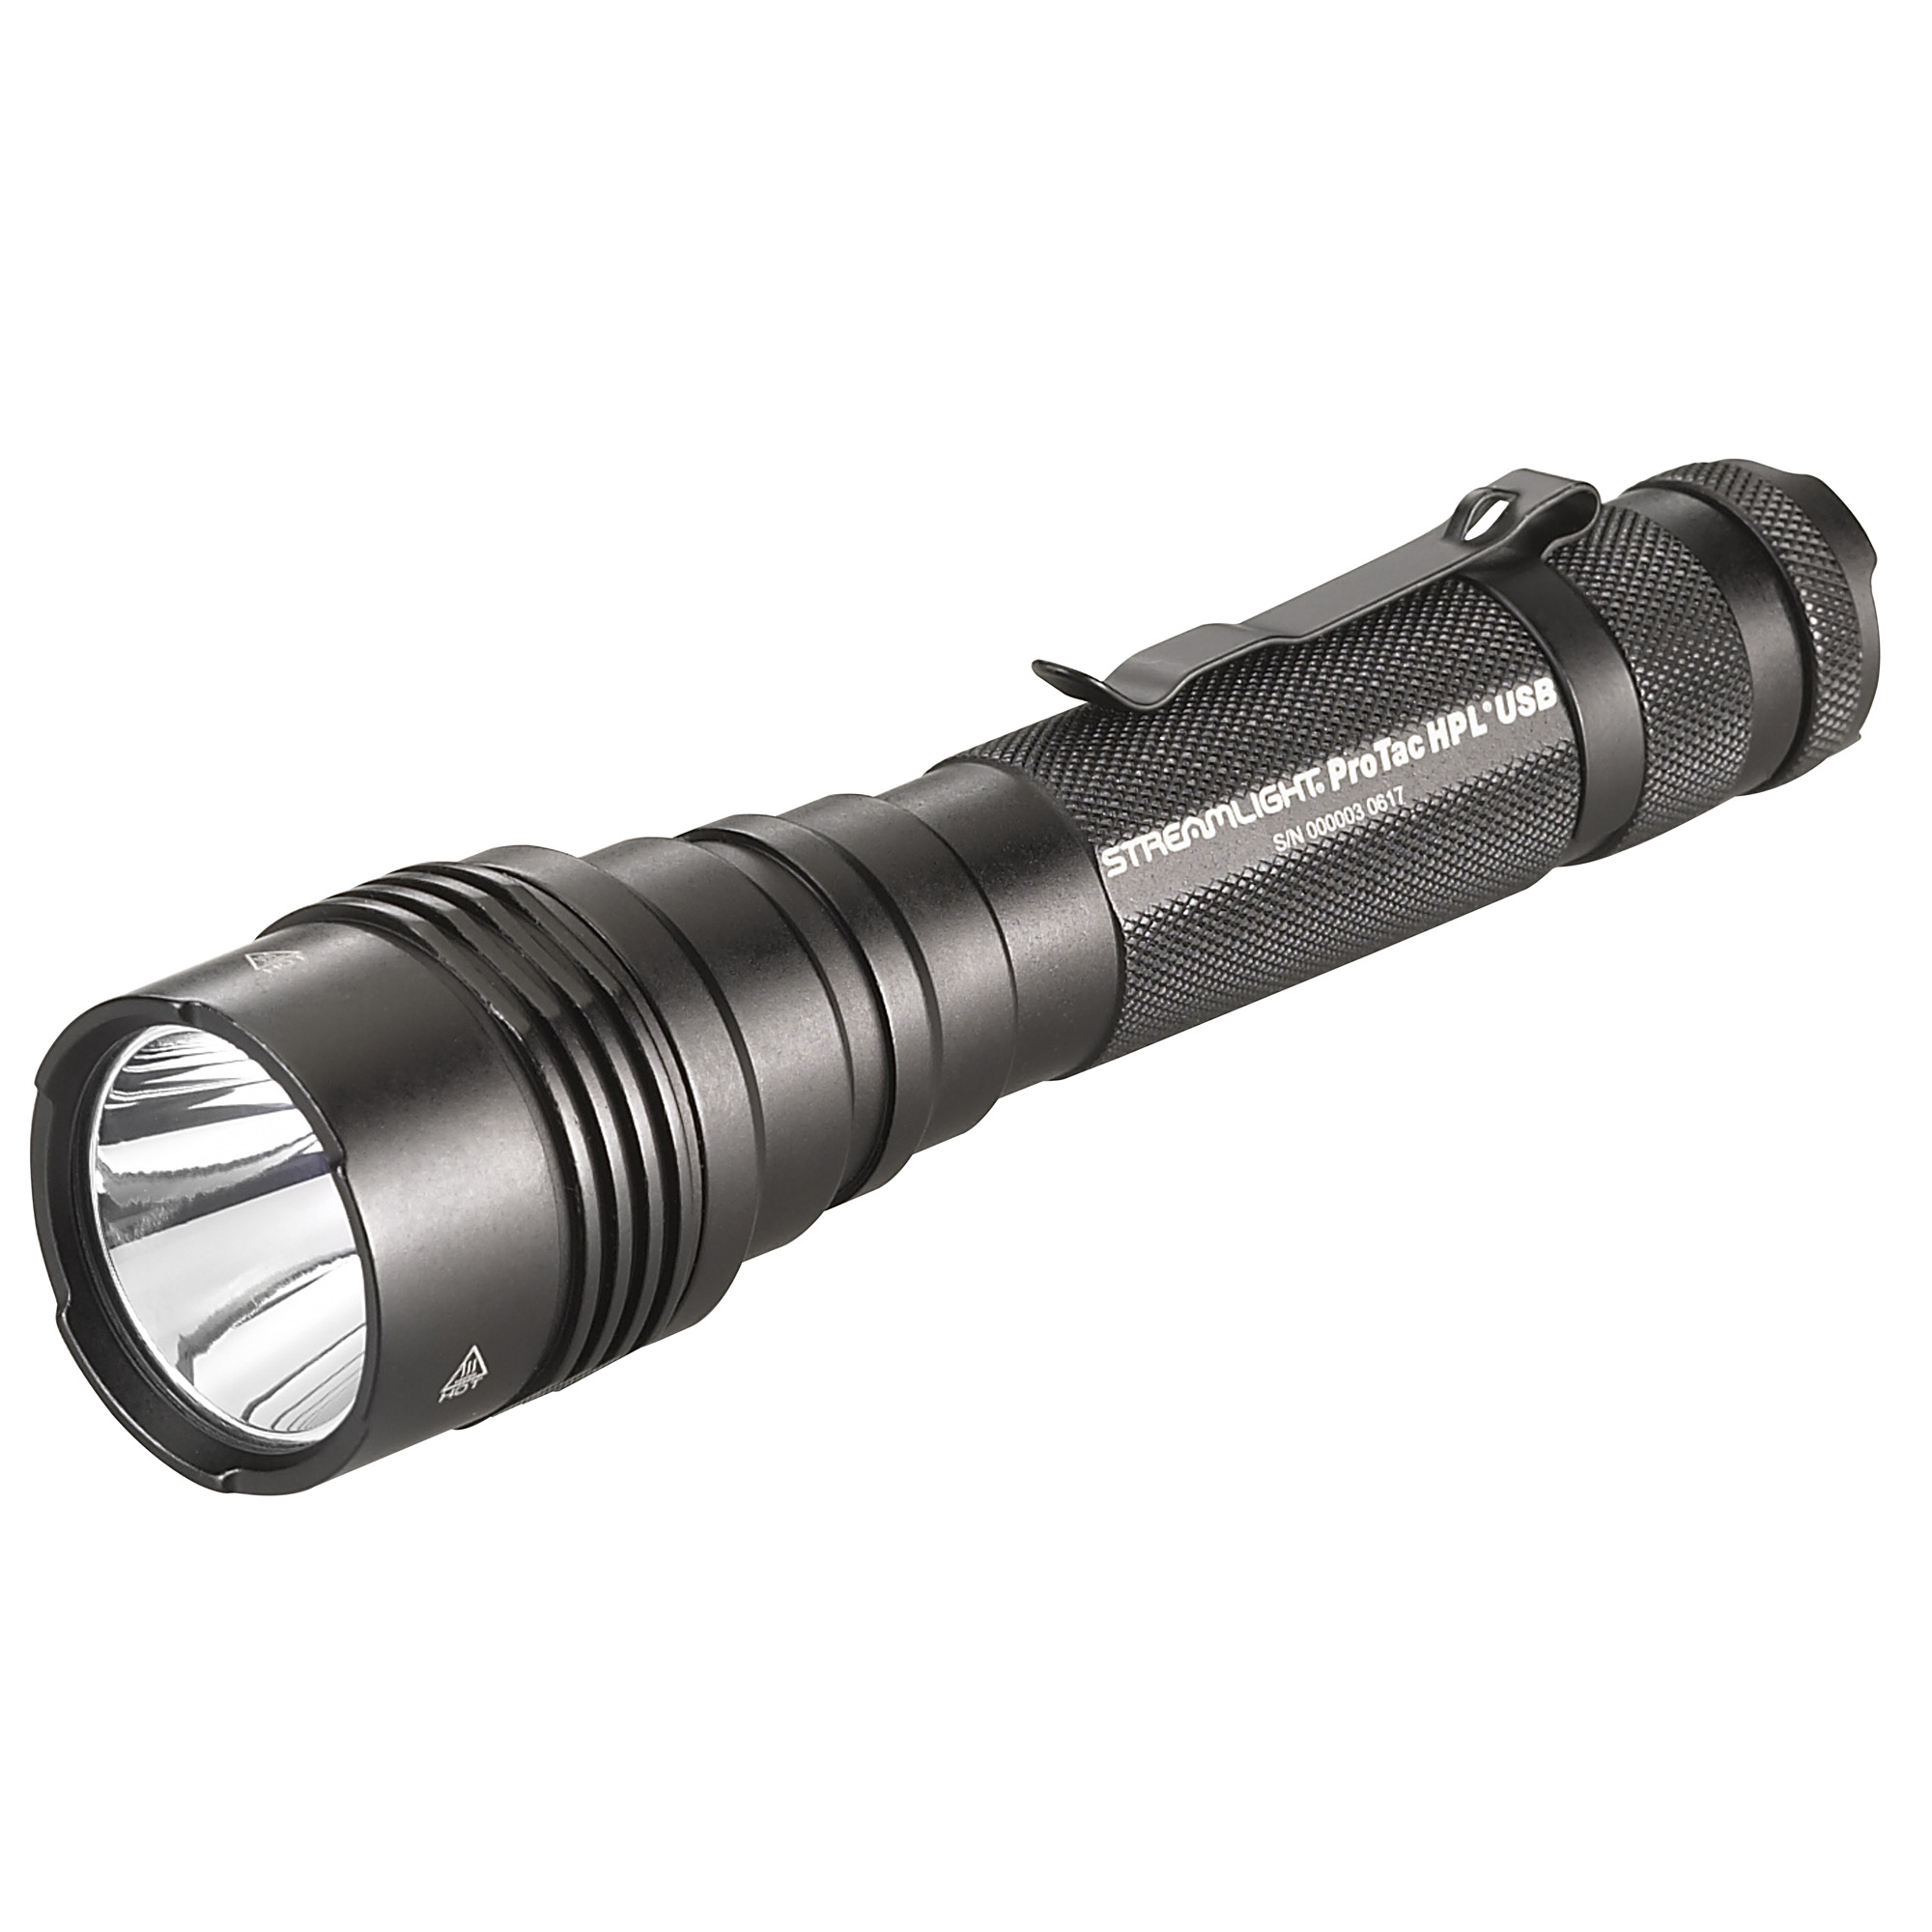 "Long-range"" high candela tactical light that produces a bright"" far-reaching beam that shines 374m to illuminate objects at a distance. It's USB rechargeable"" and it accepts multiple battery sources to use as a backup so you'll always have power when you need it."